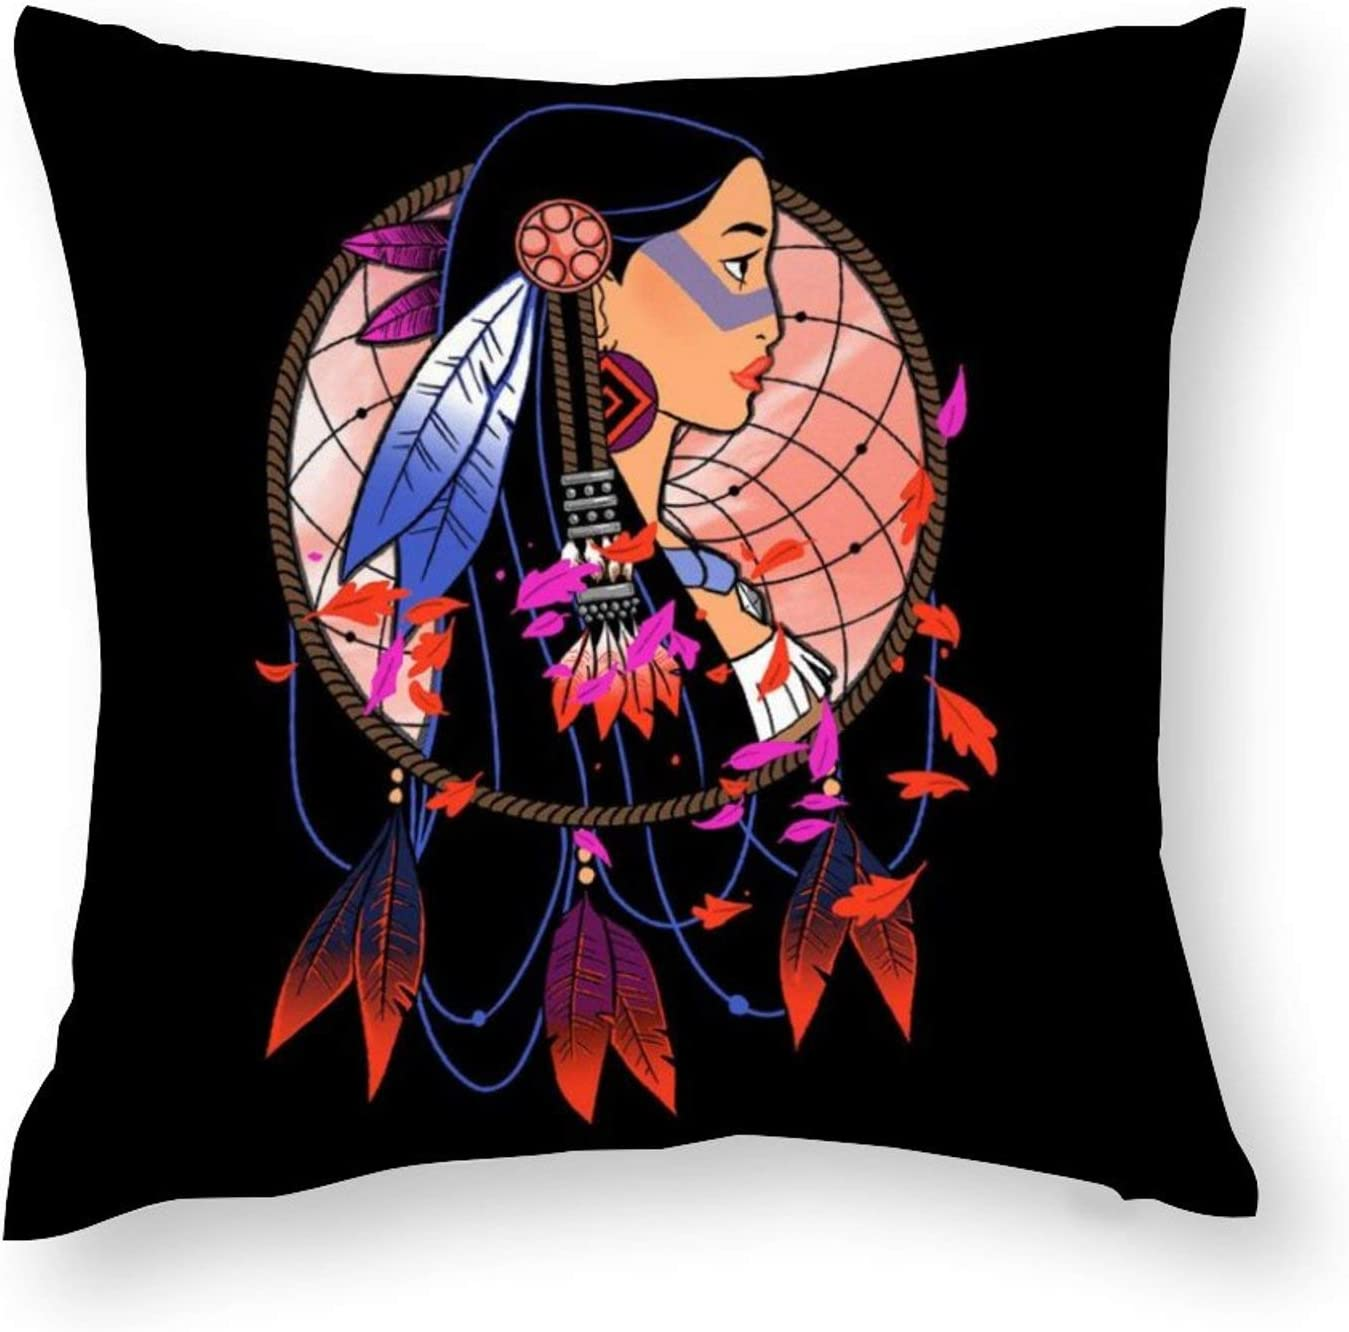 Suklly Pocahontas Colours of The Wind Pillowcase, Hidden Zipper Pillowcase, Home Sofa Decoration 18x18 inch Double-Sided Design Printed Pillowcase